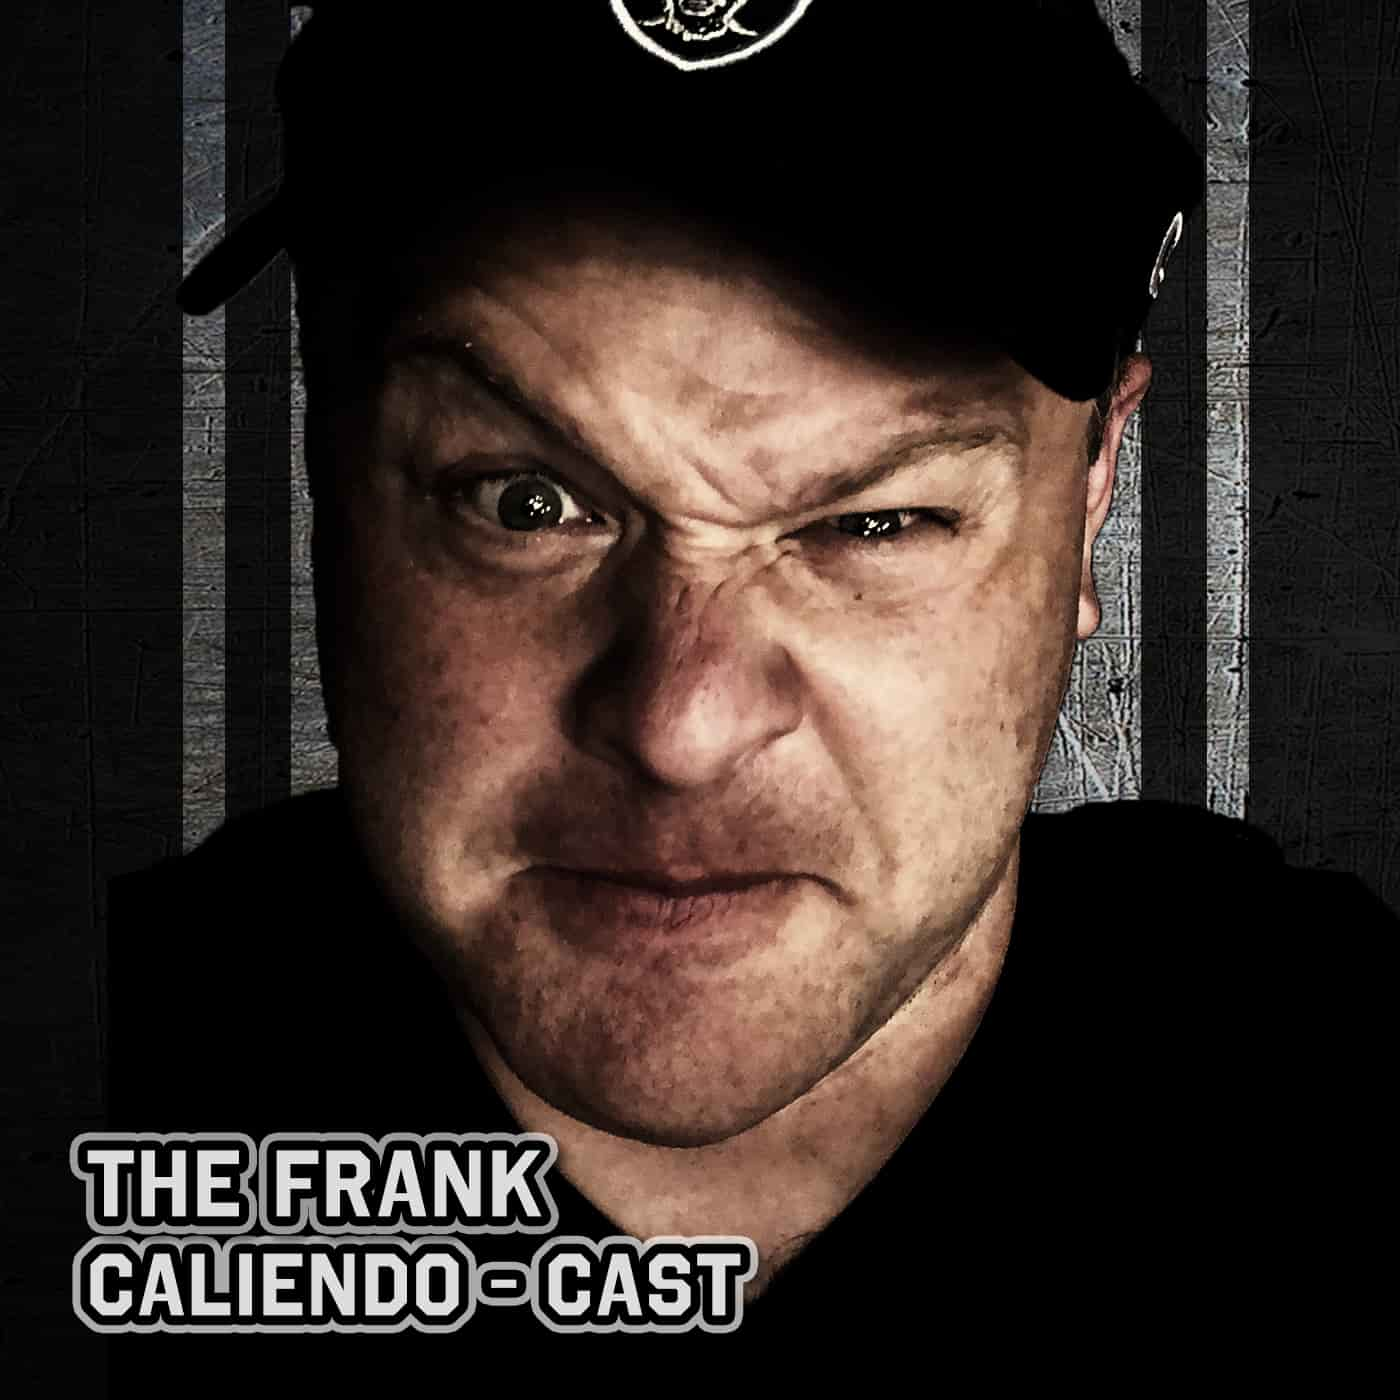 The Frank Caliendo-Cast